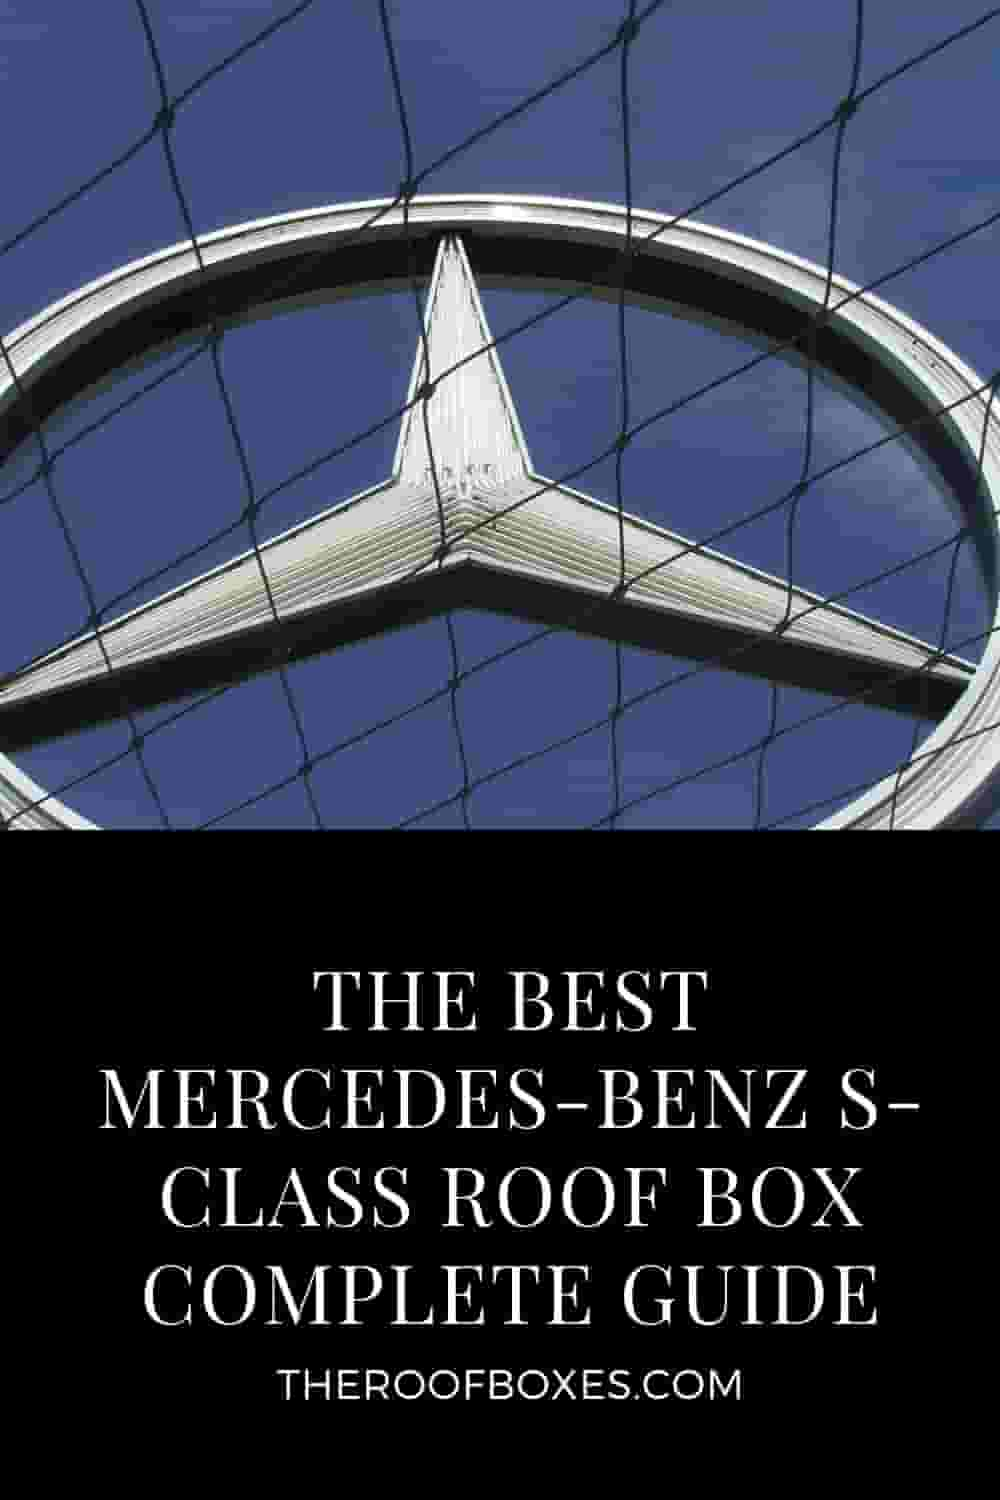 Mercedes-Benz S-Class Roof Box– Reviews and Comparison